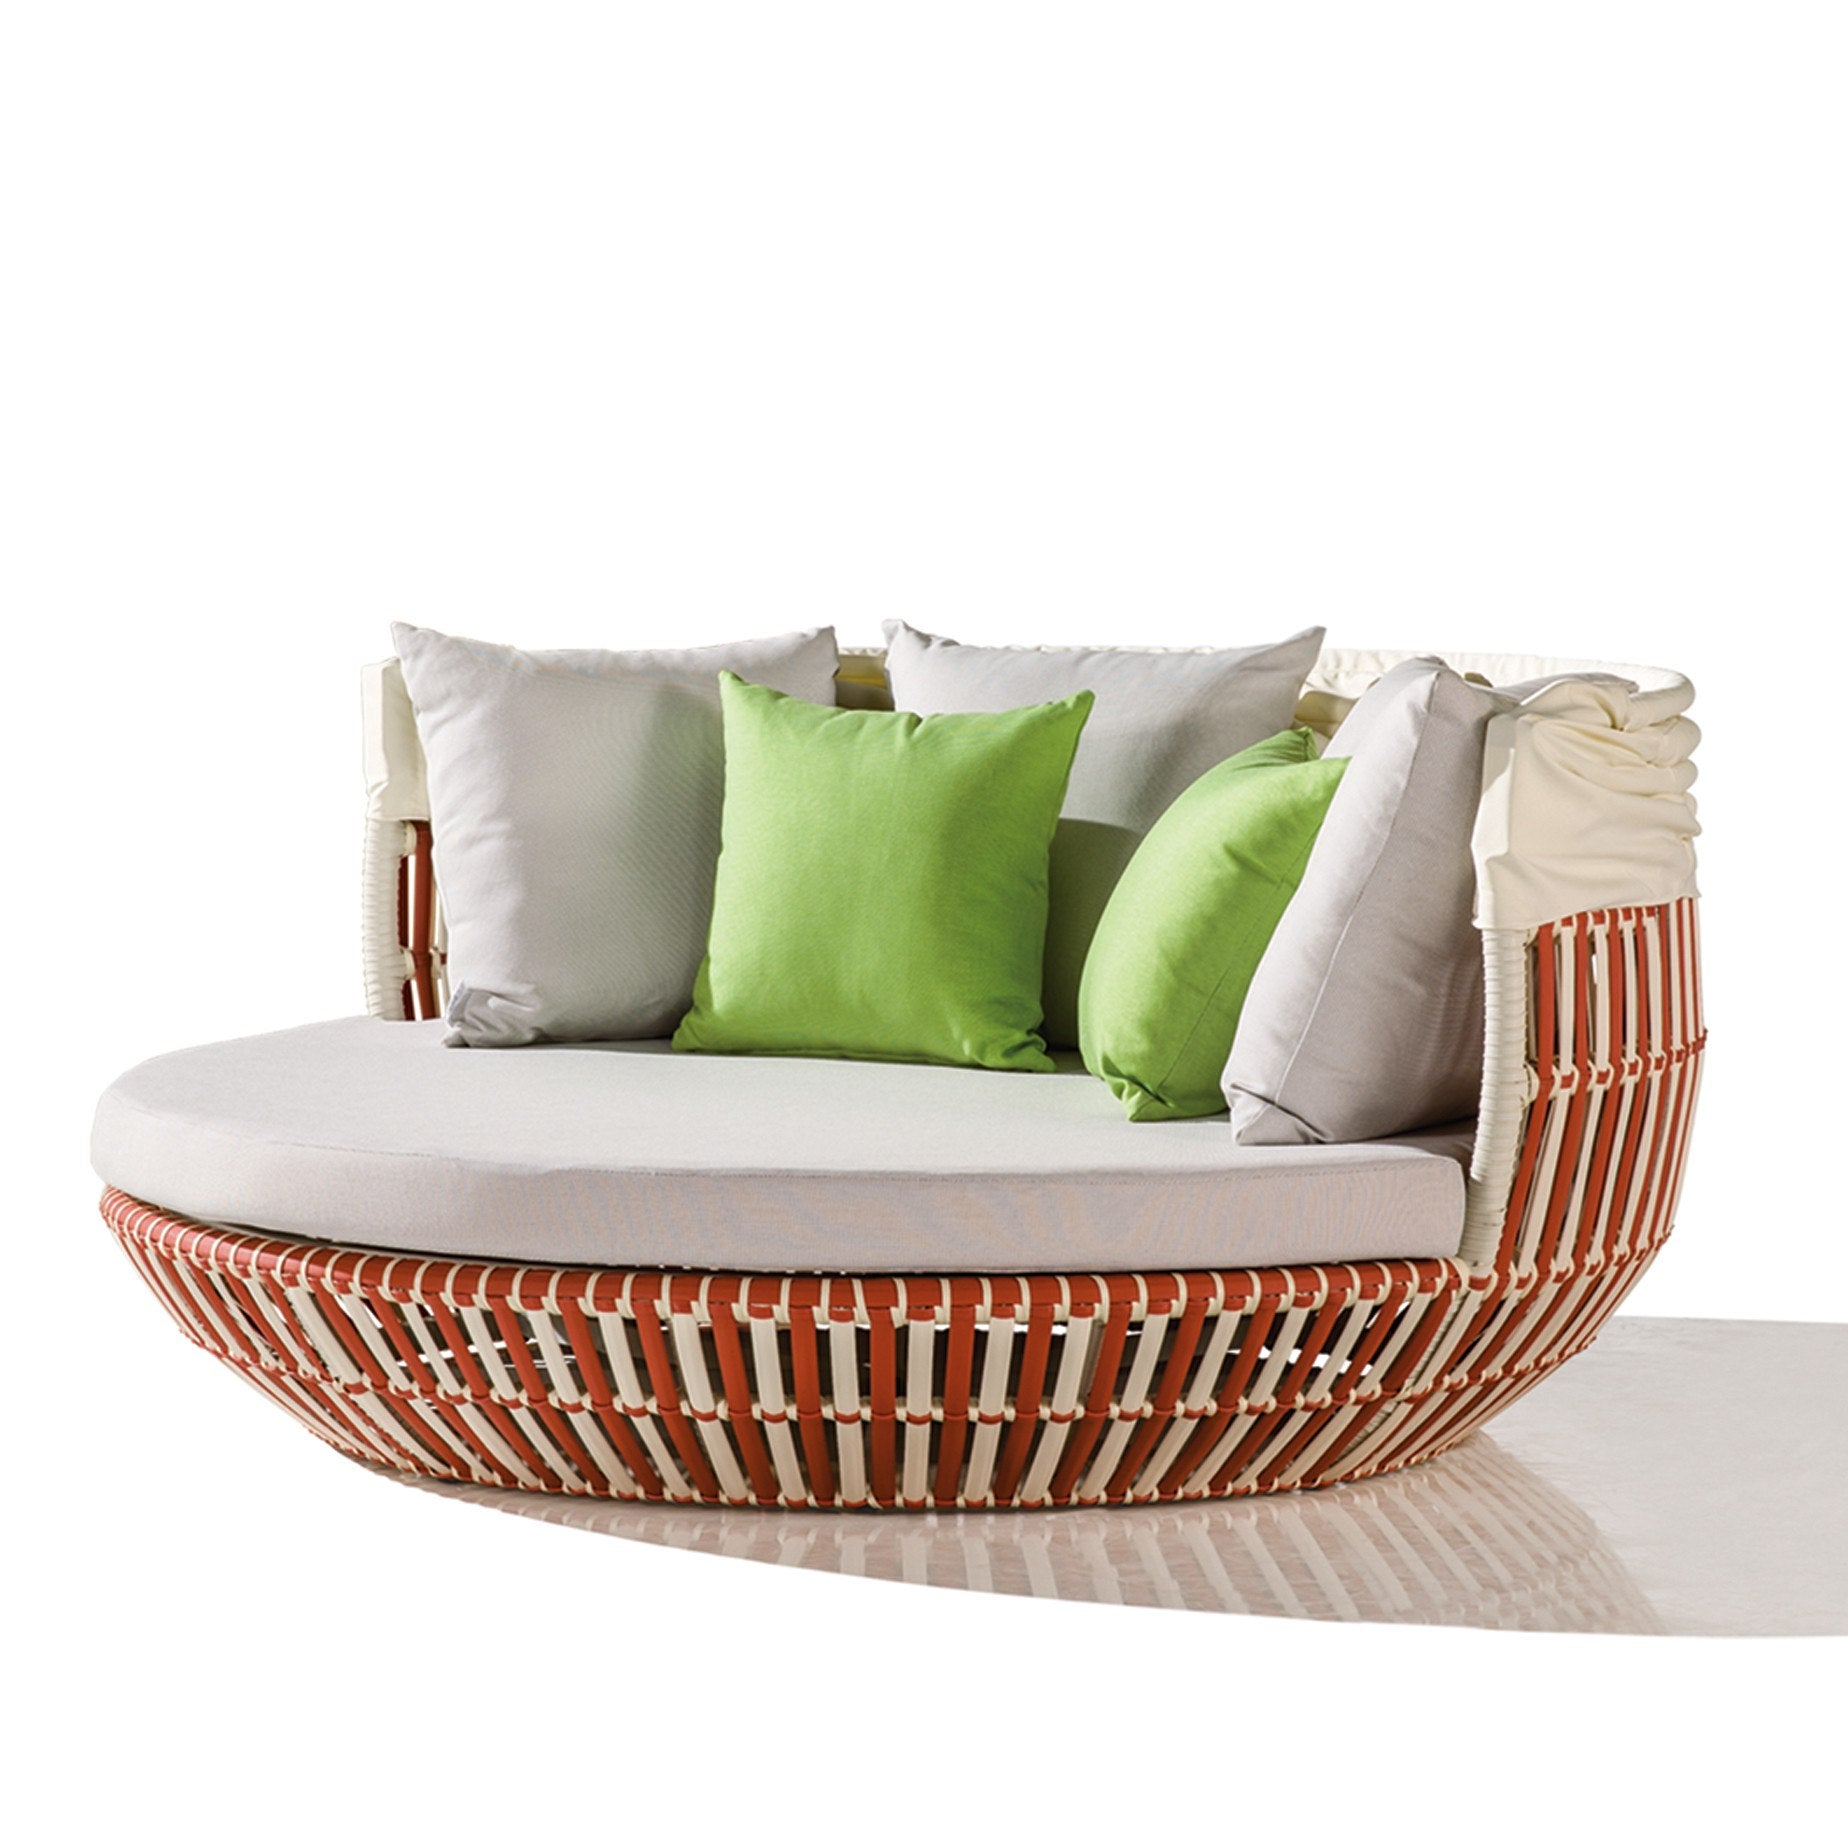 Babylon Daybed In Sample Sale Contract Quality Outdoor Daybed